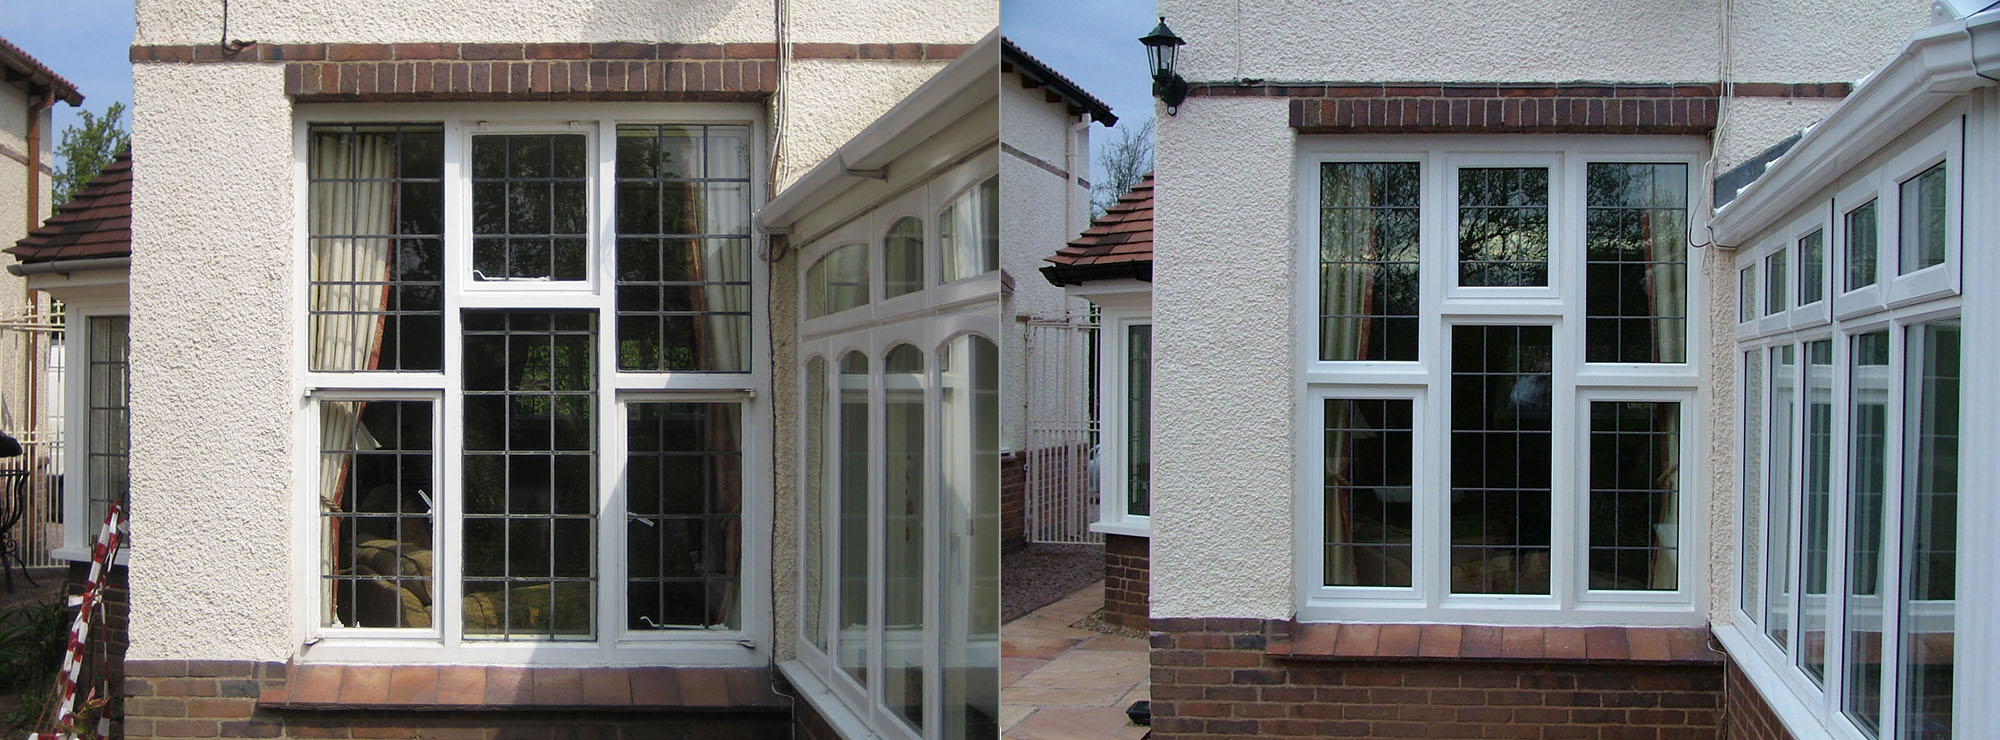 <strong>Period property in Shropshire.</strong>Replacement of steel casement windows with white commercial aluminium inserts into existing timber sub frames.